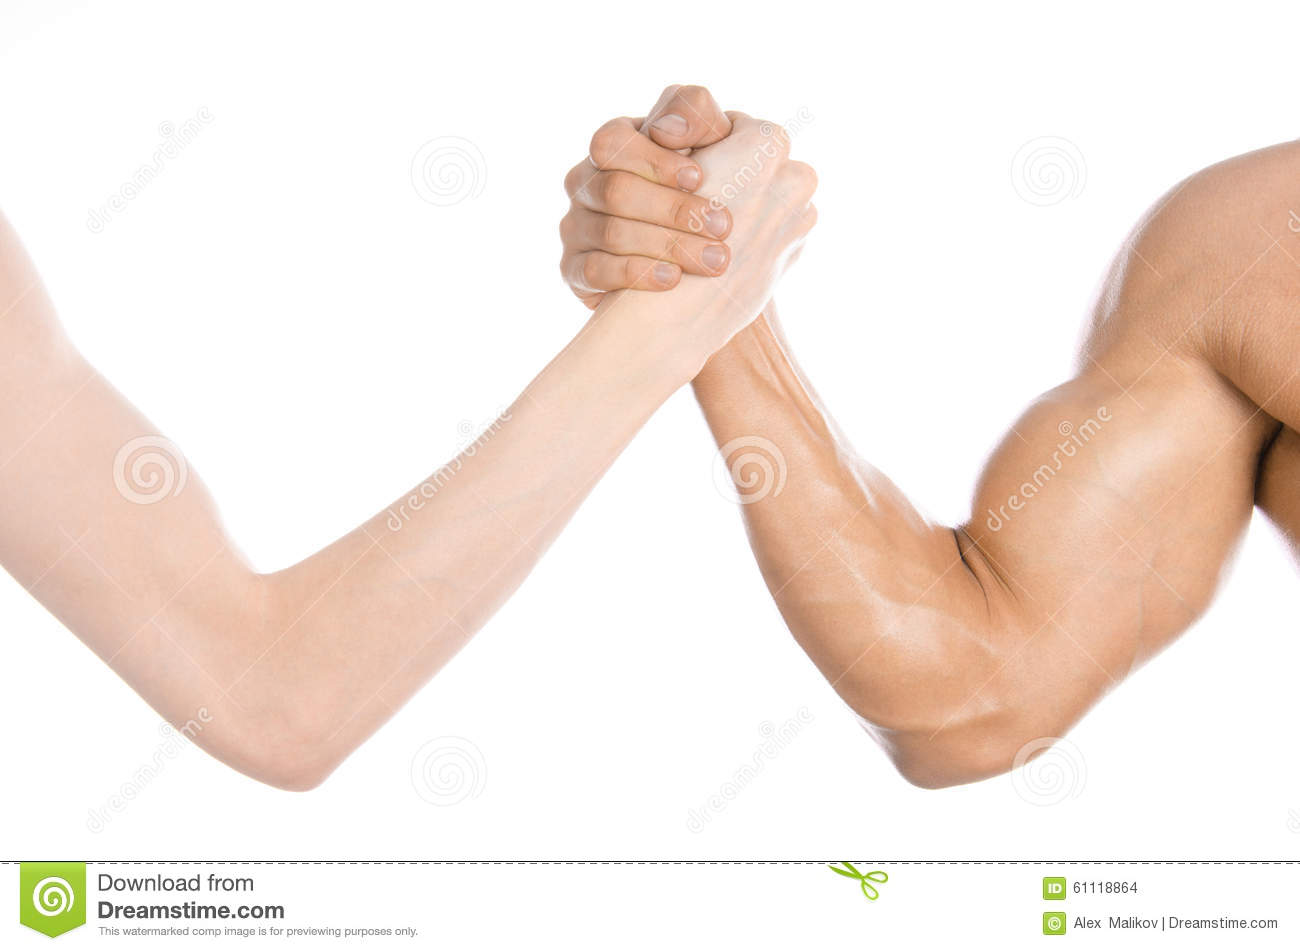 Bodybuilding & Fitness Topic: Arm Wrestling Thin Hand And